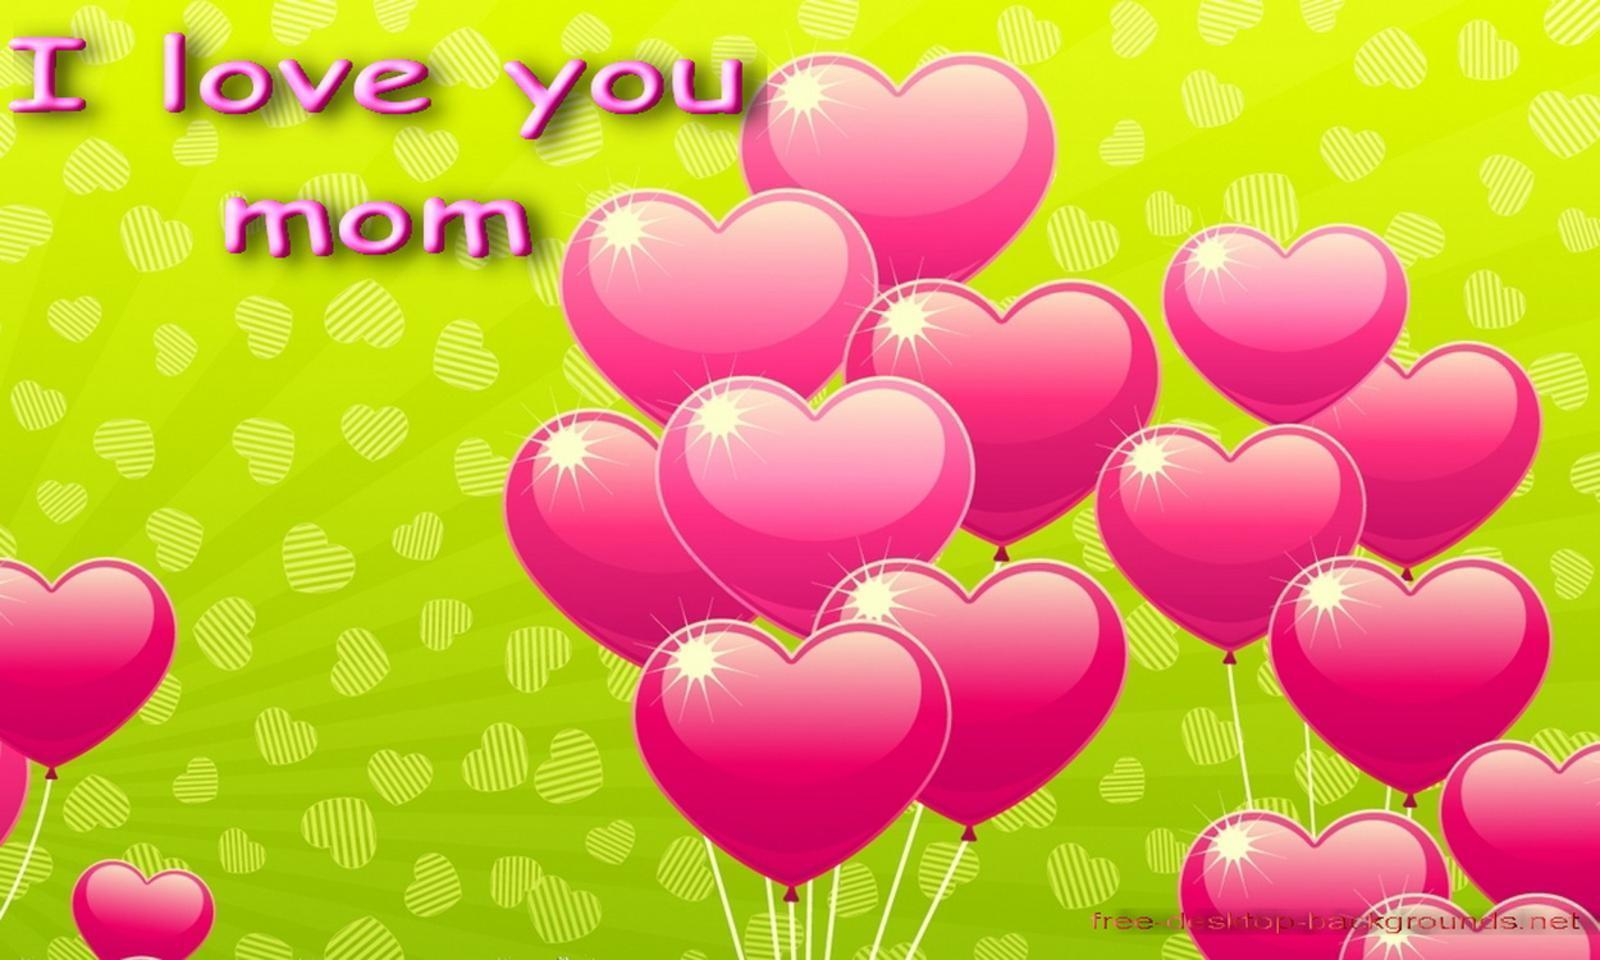 Love Wallpaper For Mom : I Love You Mom Wallpapers - Wallpaper cave